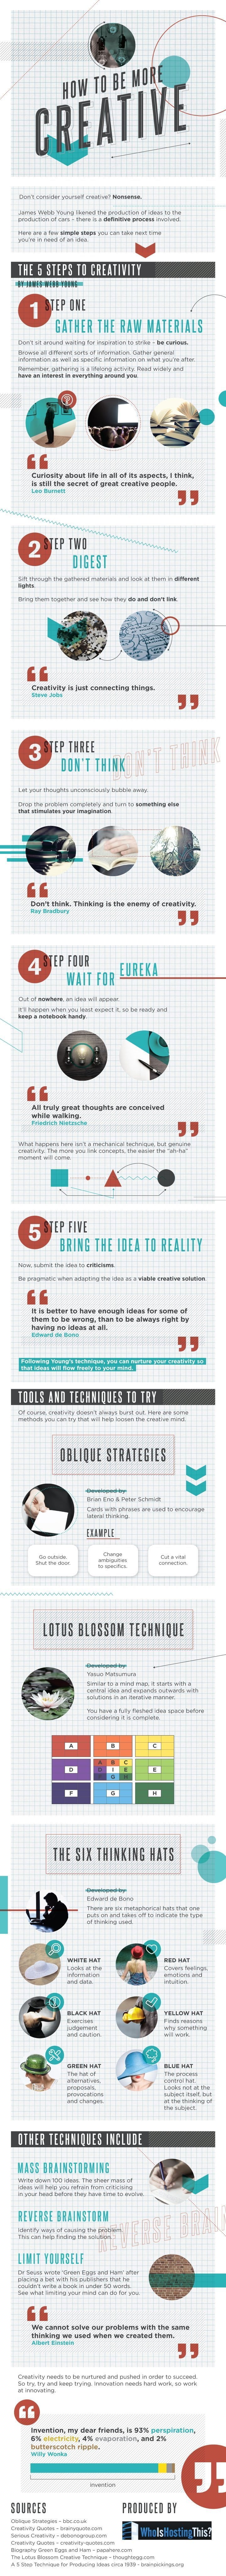 10 Techniques to Unleash Your Creativity......one of the best infographics I have ever seen on Creativity